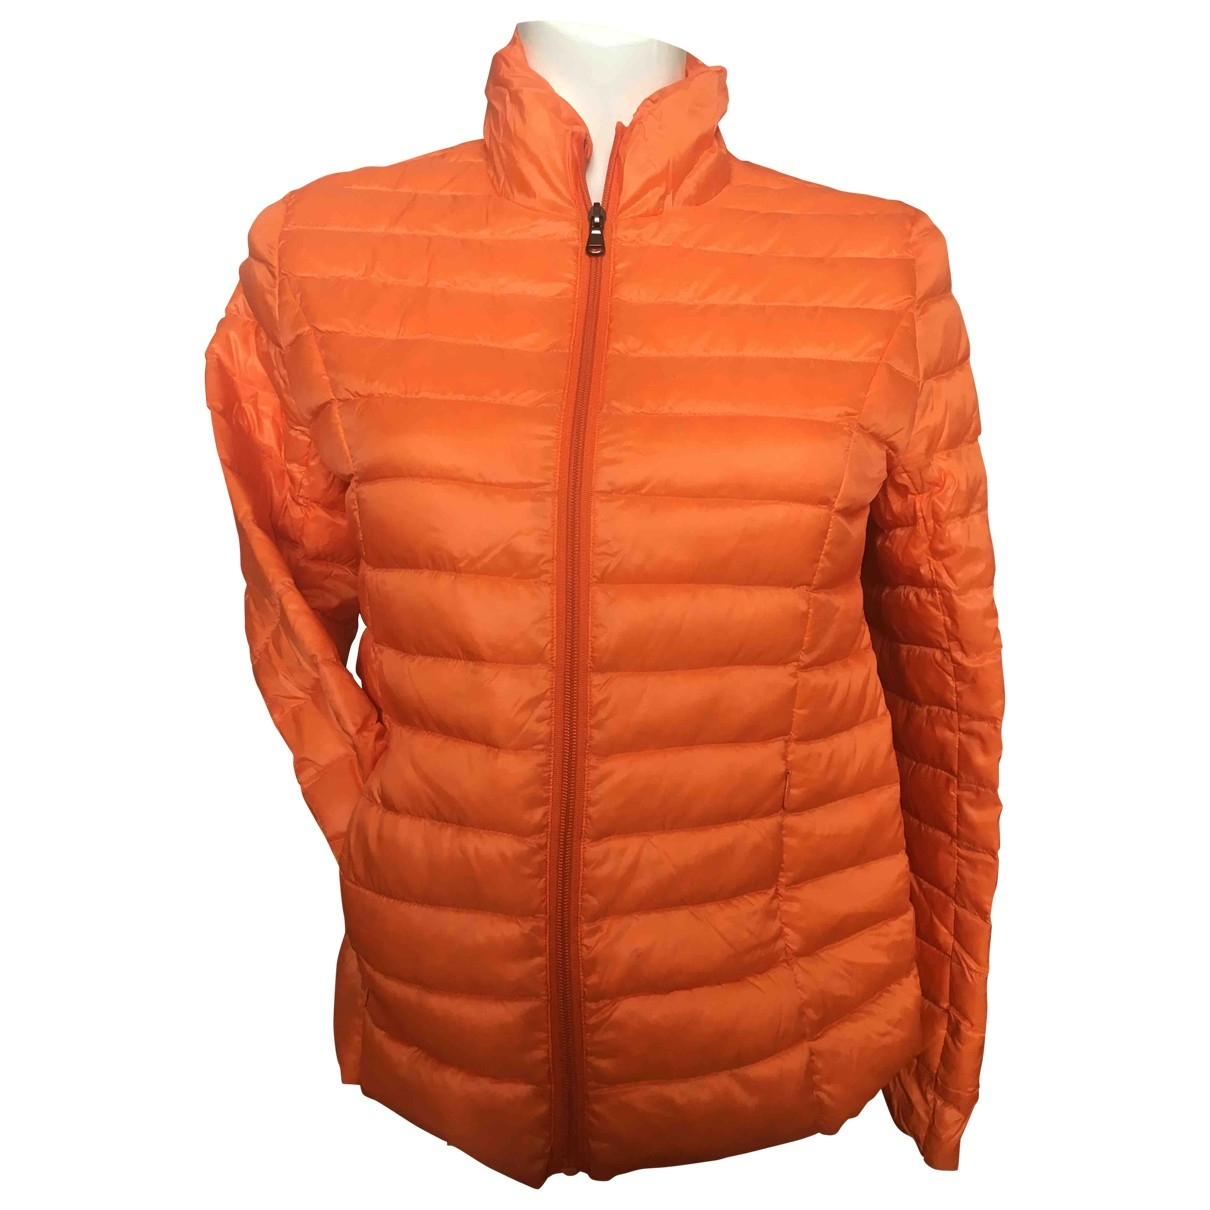 Jott \N Orange jacket for Women M International